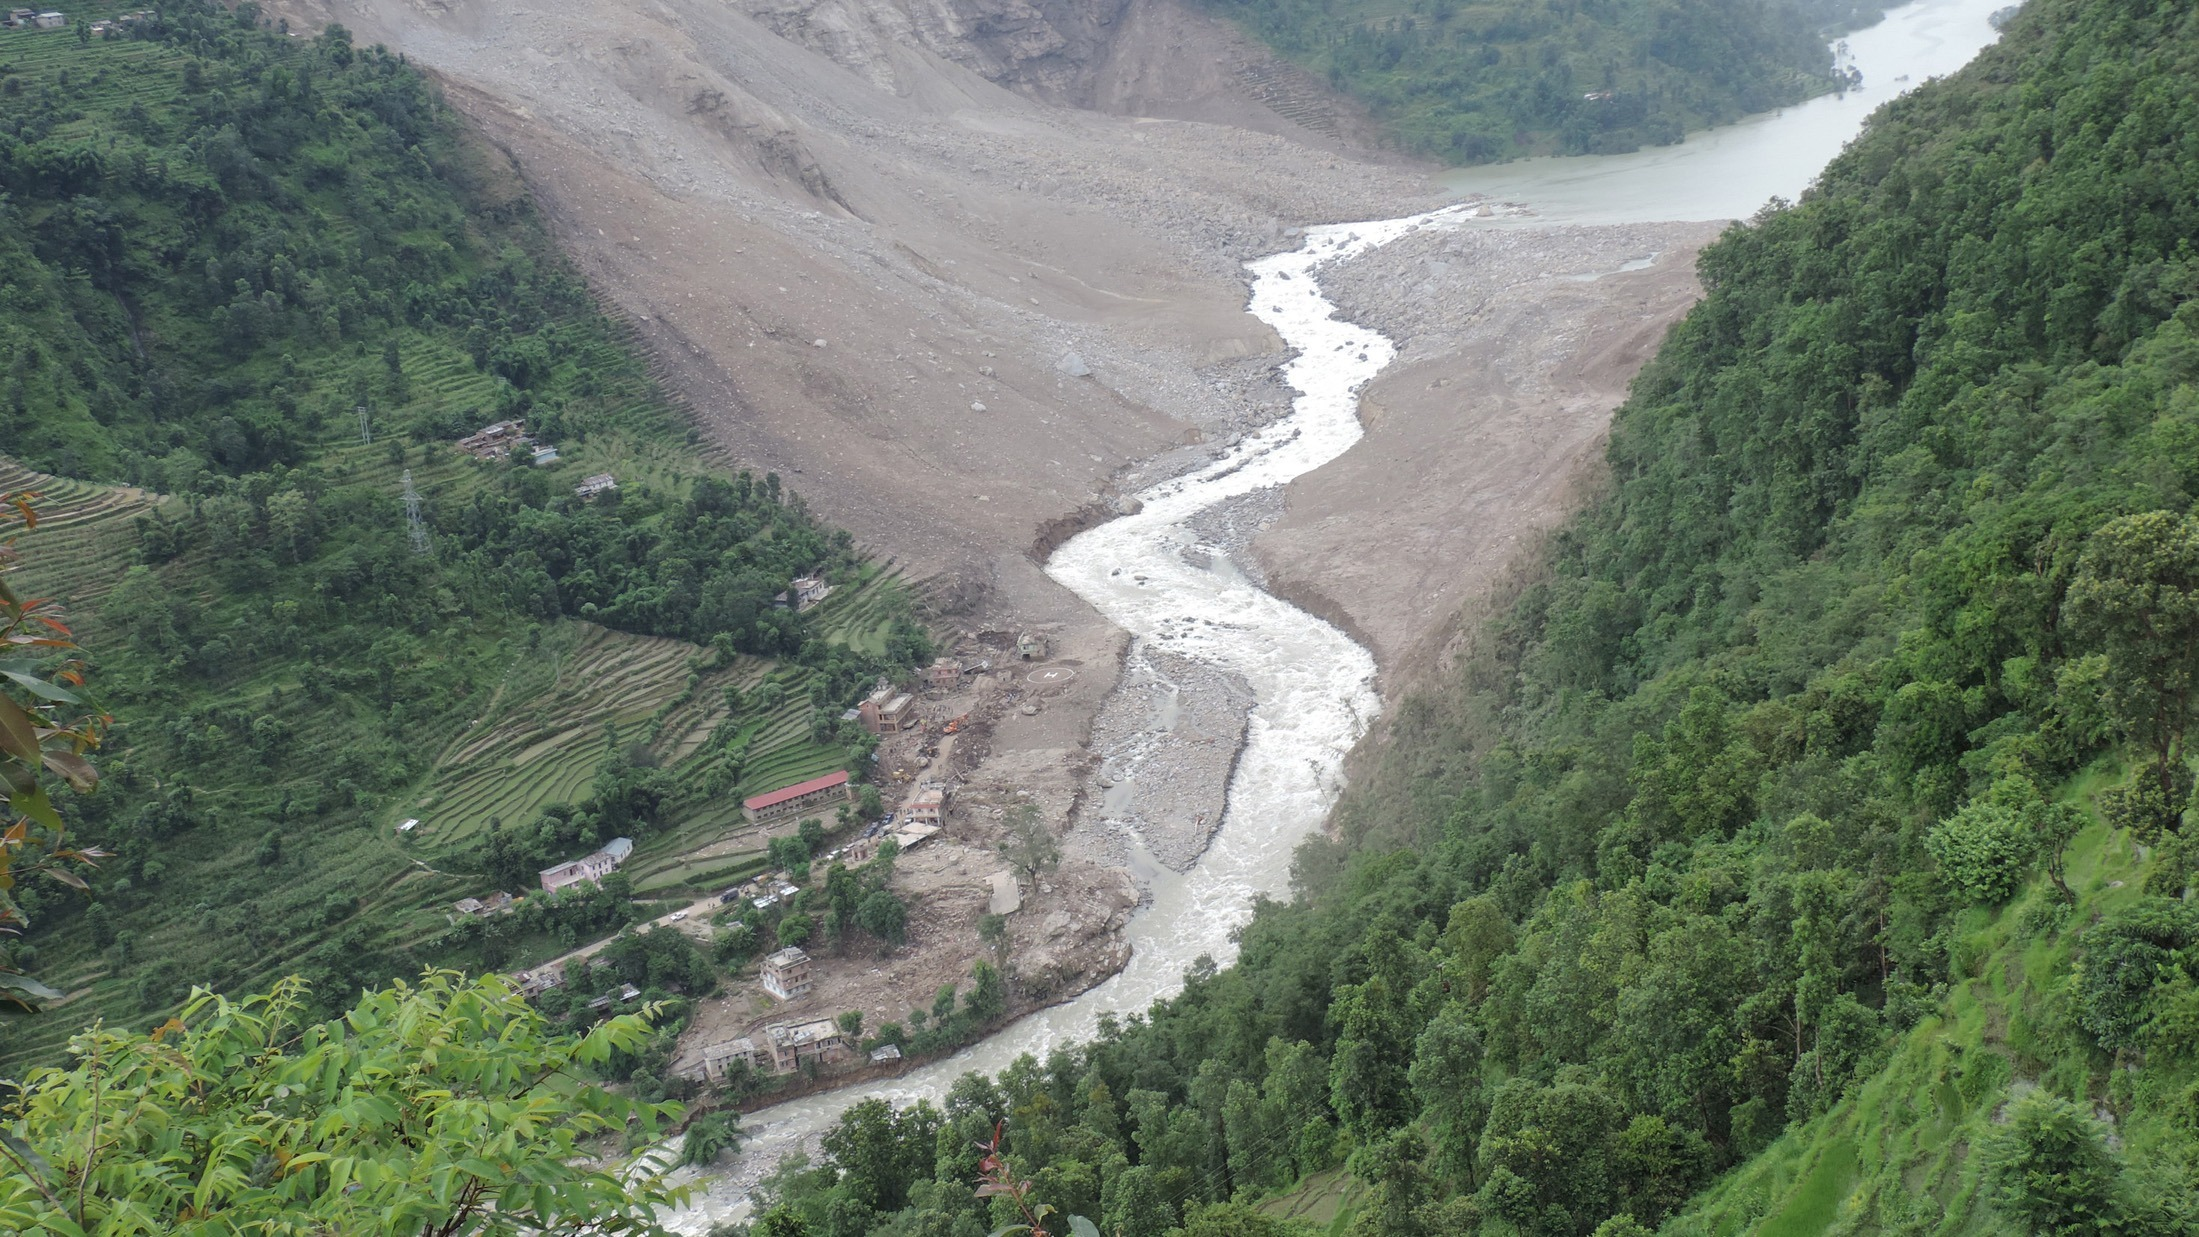 A massive landslide struck Jure village north of Nepal's capital, Kathmandu, on 2 June, displacing hundreds and killing at least 33.